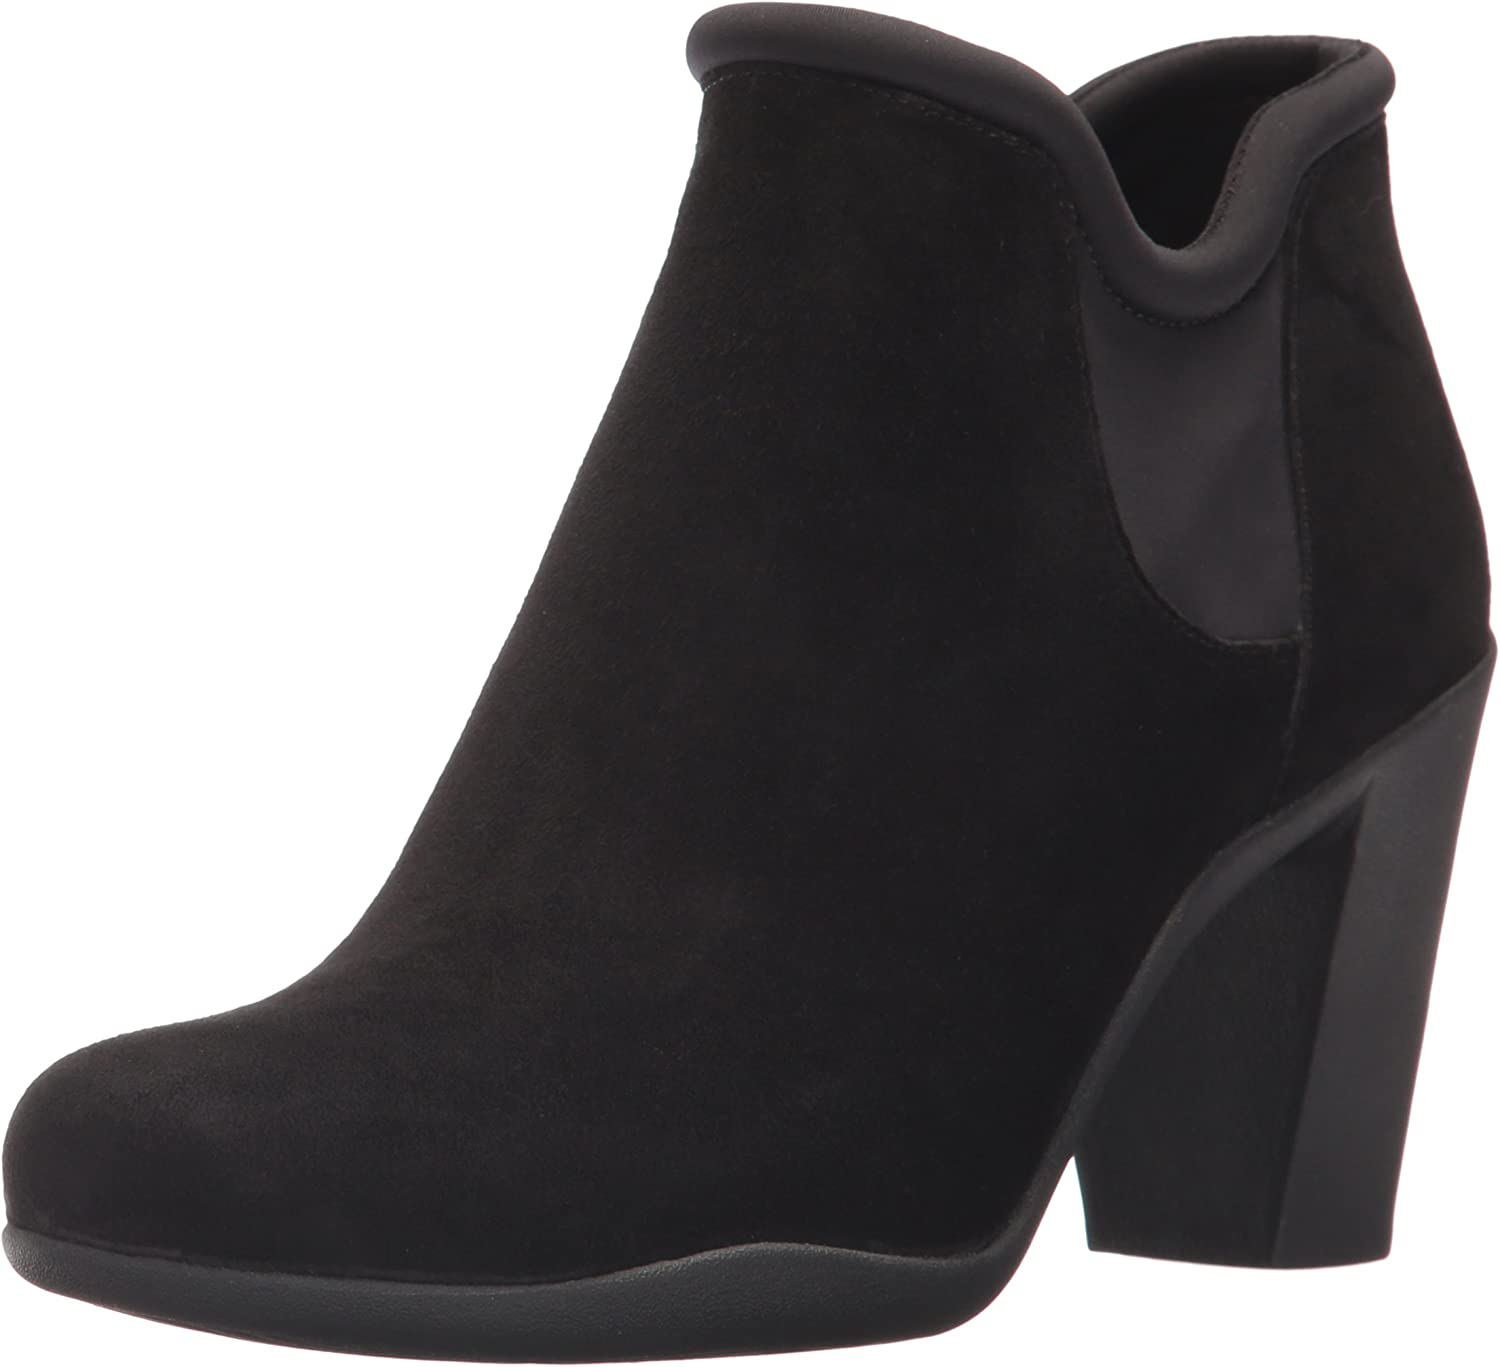 Clarks Women's Adya Bella Ankle Boot